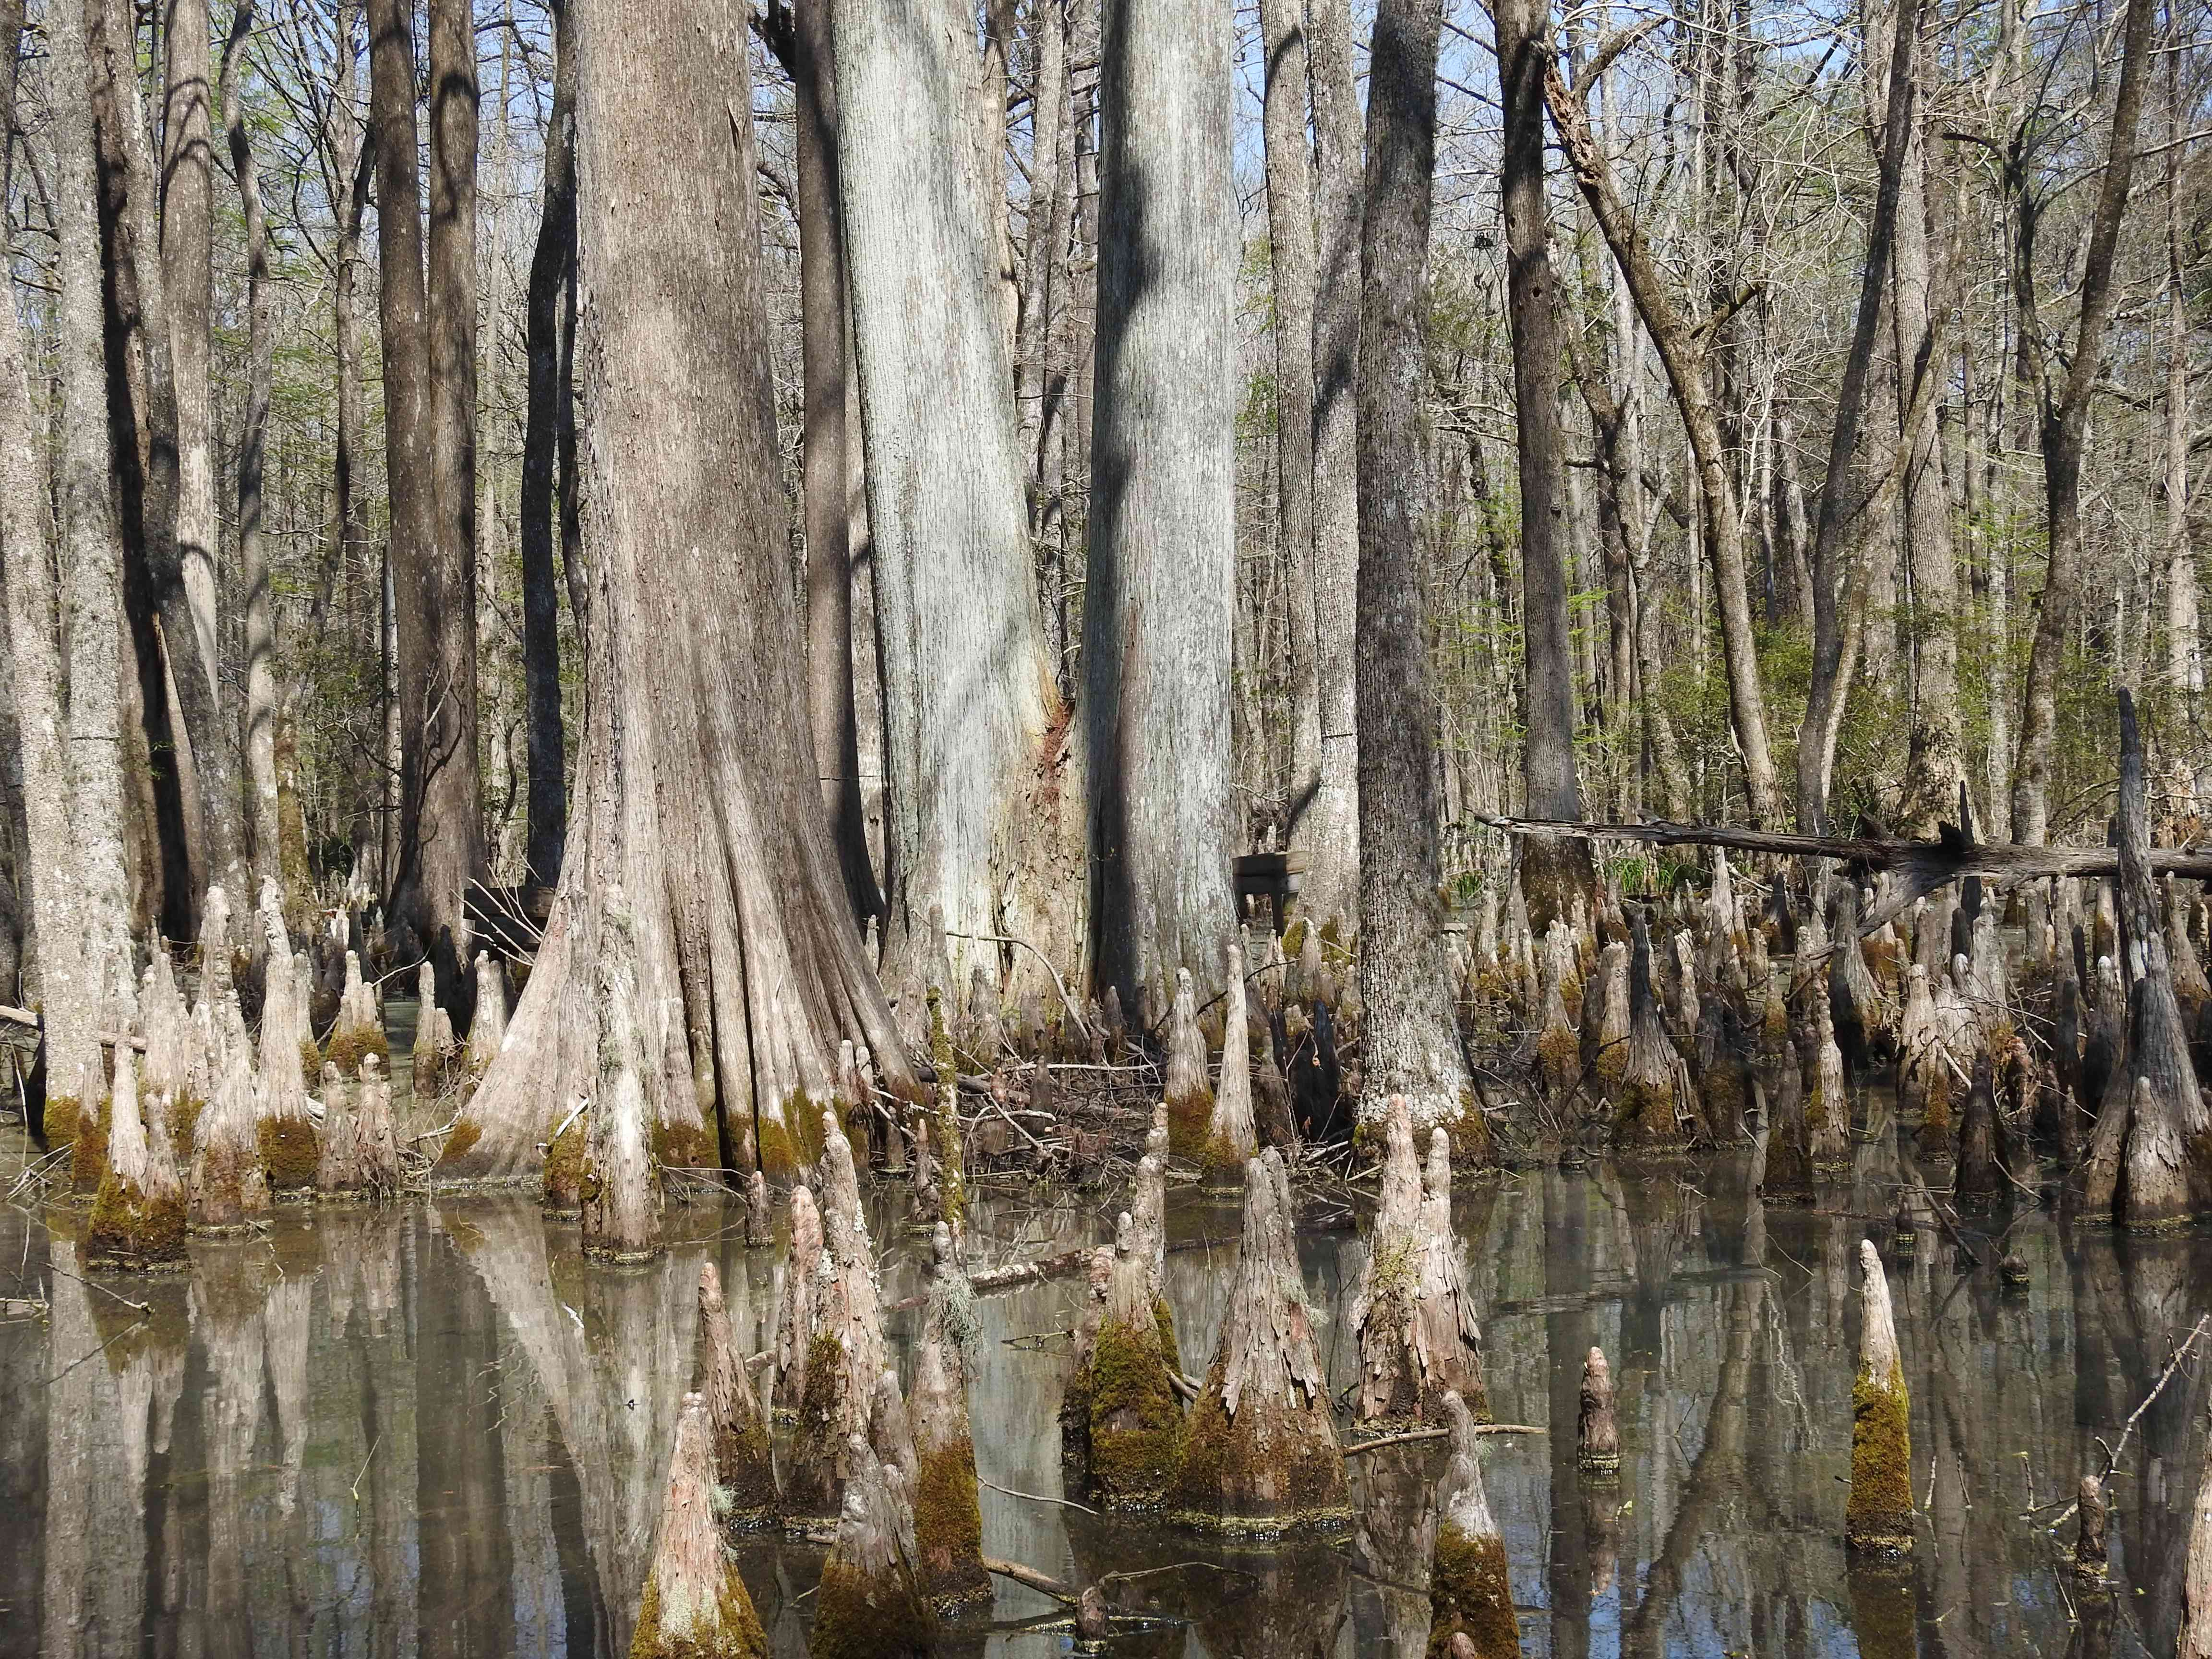 Trunks of healthy cypress trees growing in a swamp